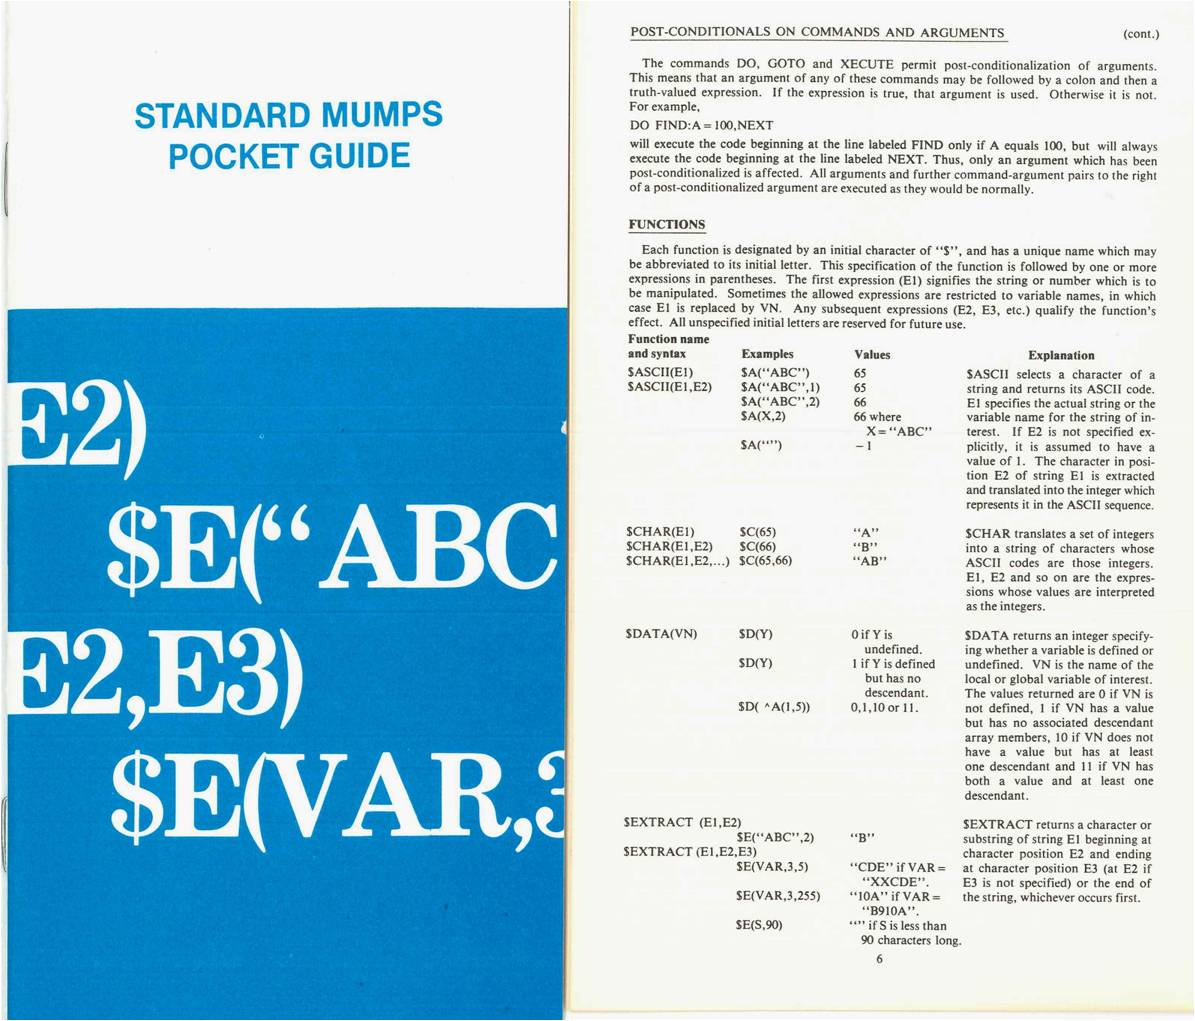 1983maybe-pamphlet-mumps-pocket-guide